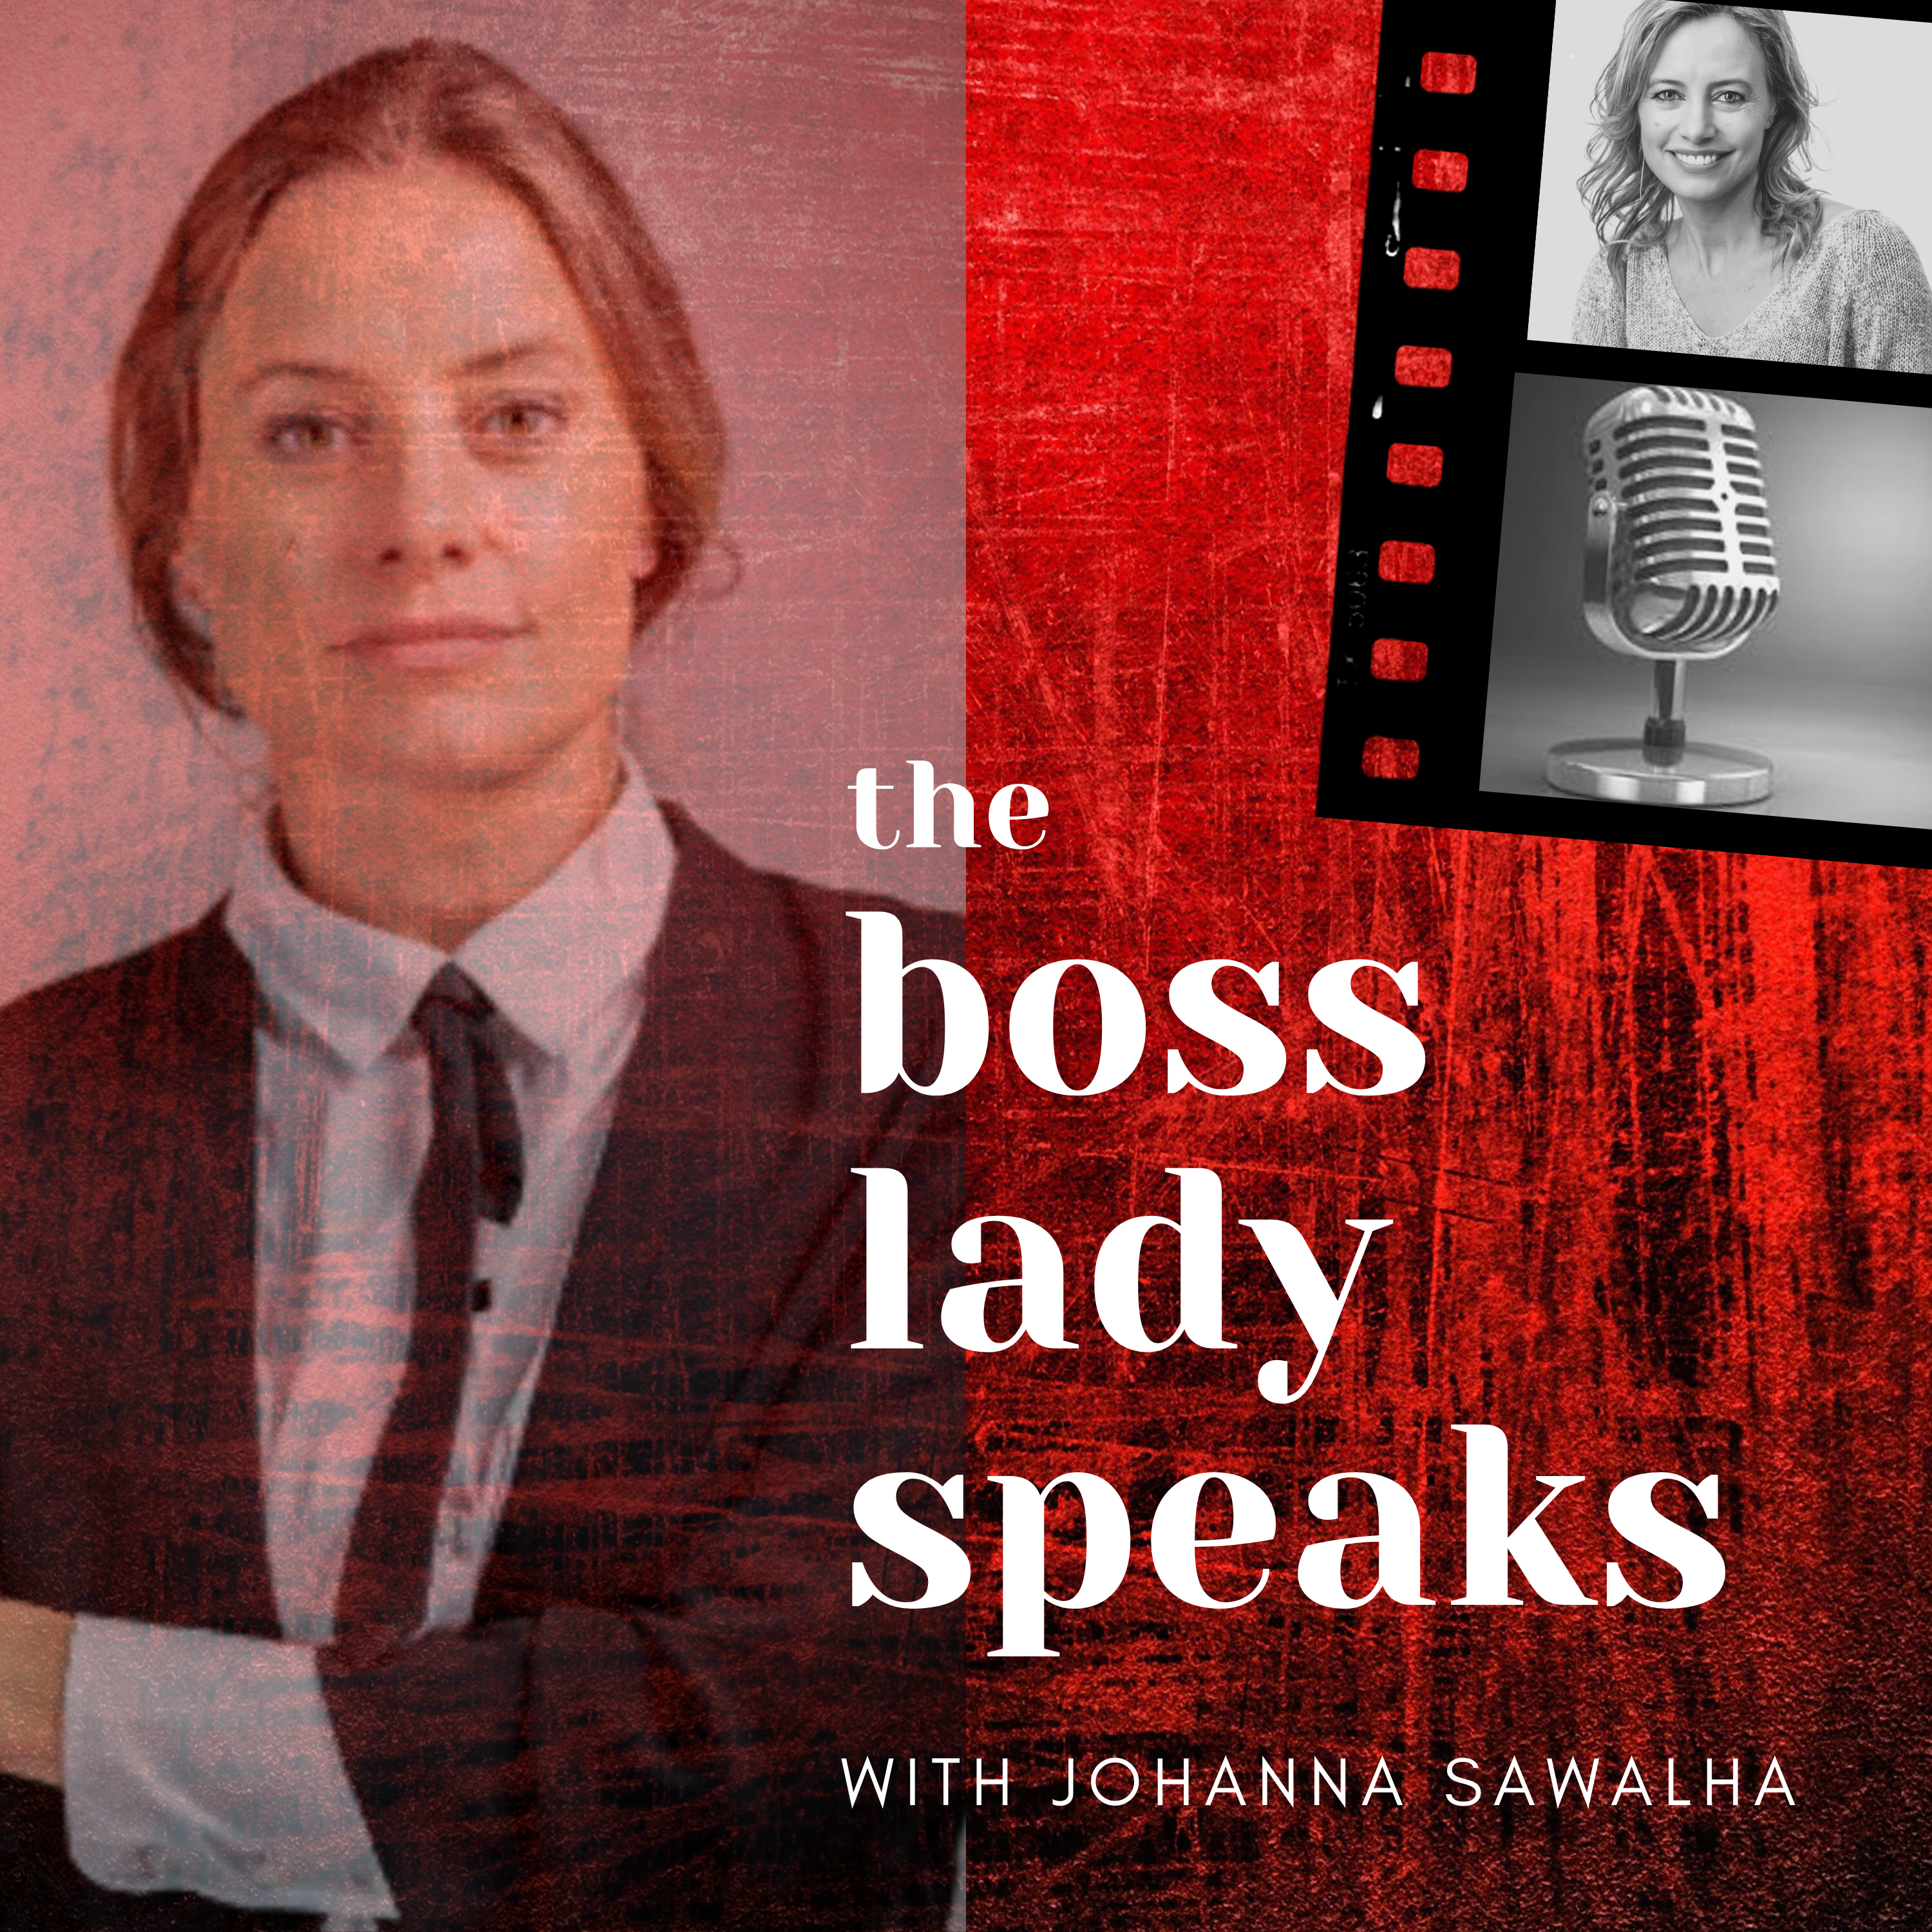 BossLady Speaks with Johanna Sawalha Premieres October 3rd!